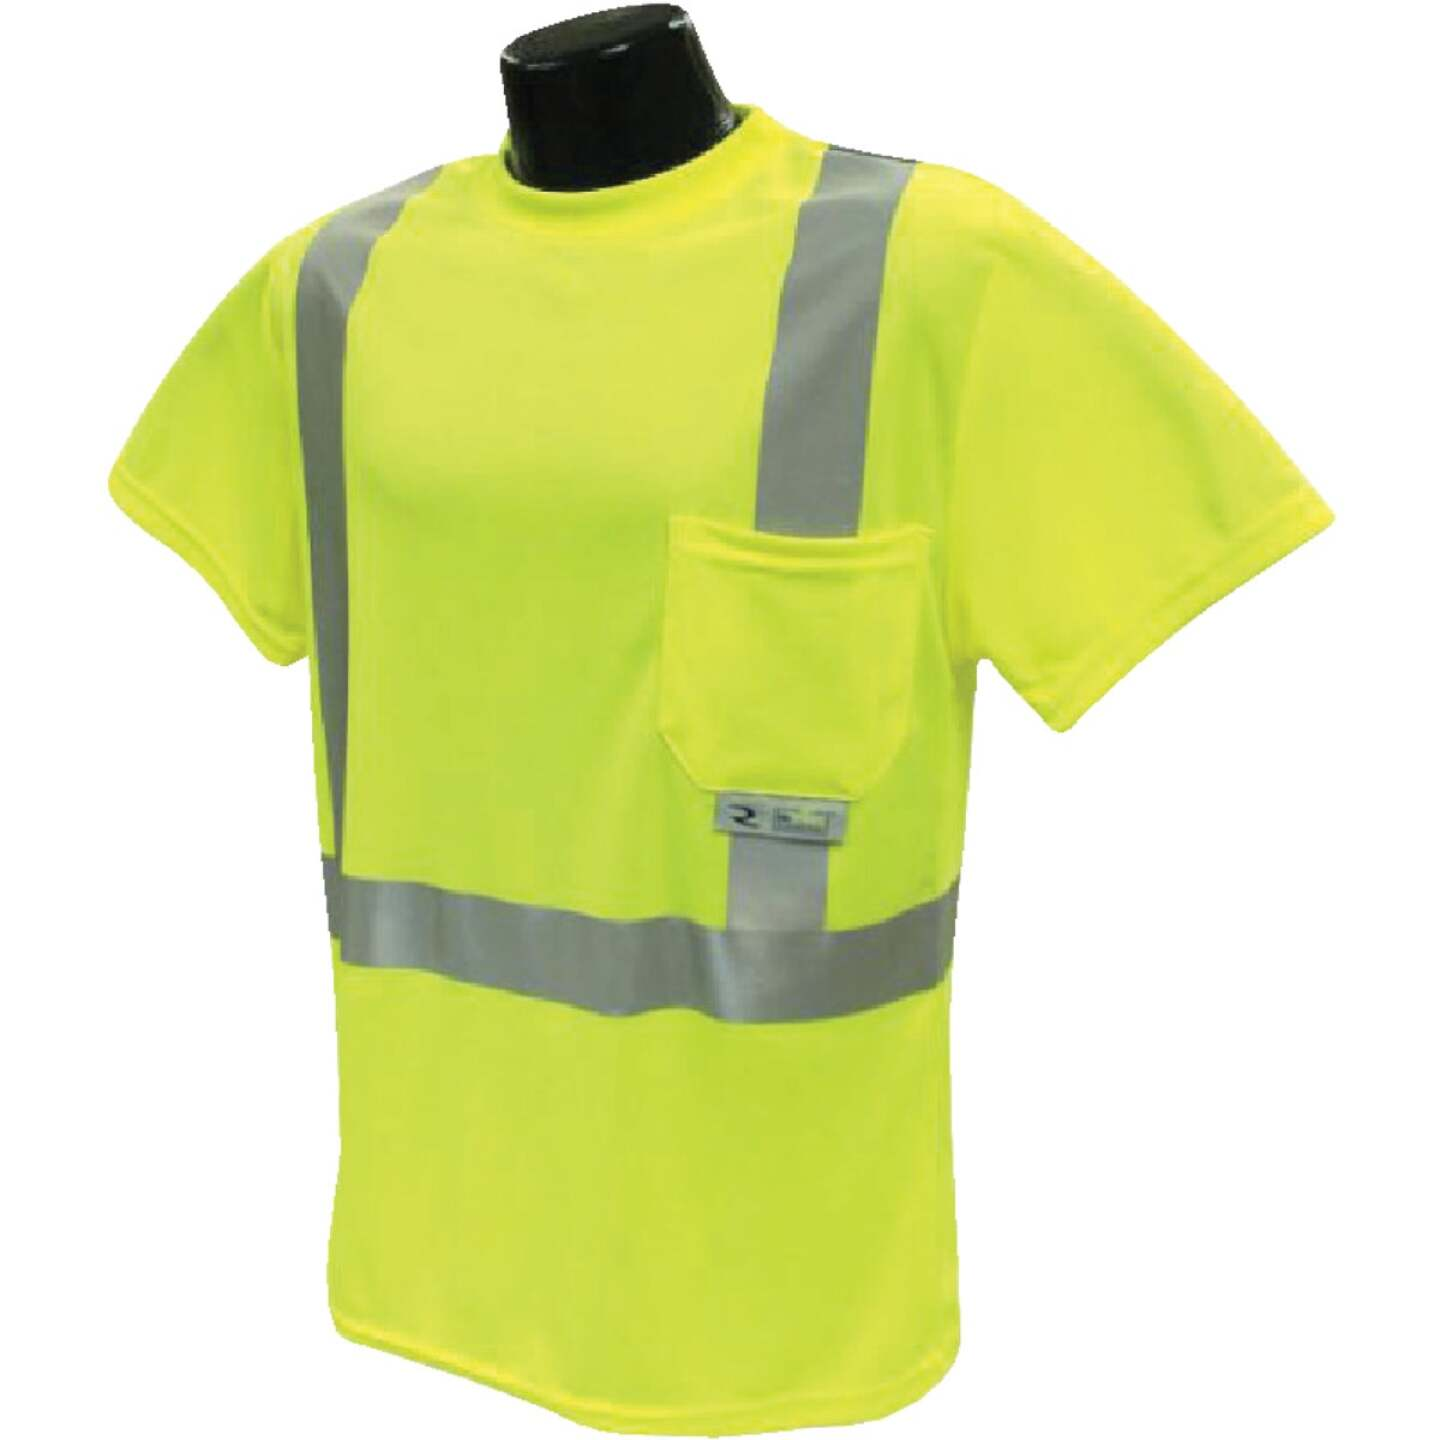 Radians Rad Wear ANSI Class 2 Hi Vis Green Safety T-Shirt XL Image 1